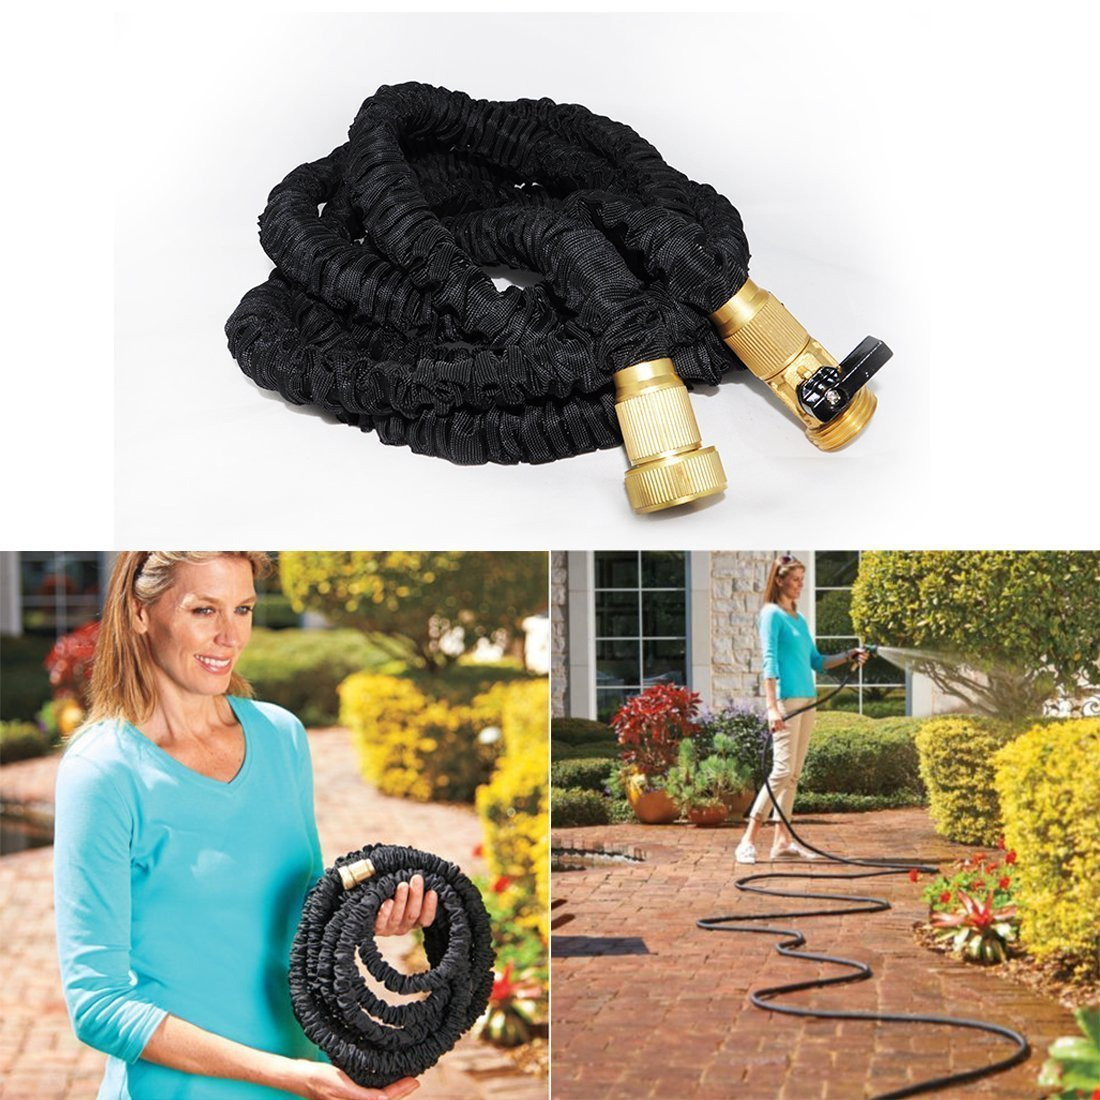 Felji 25 ft Expanding Garden Hose in Black with Solid Brass Fitting